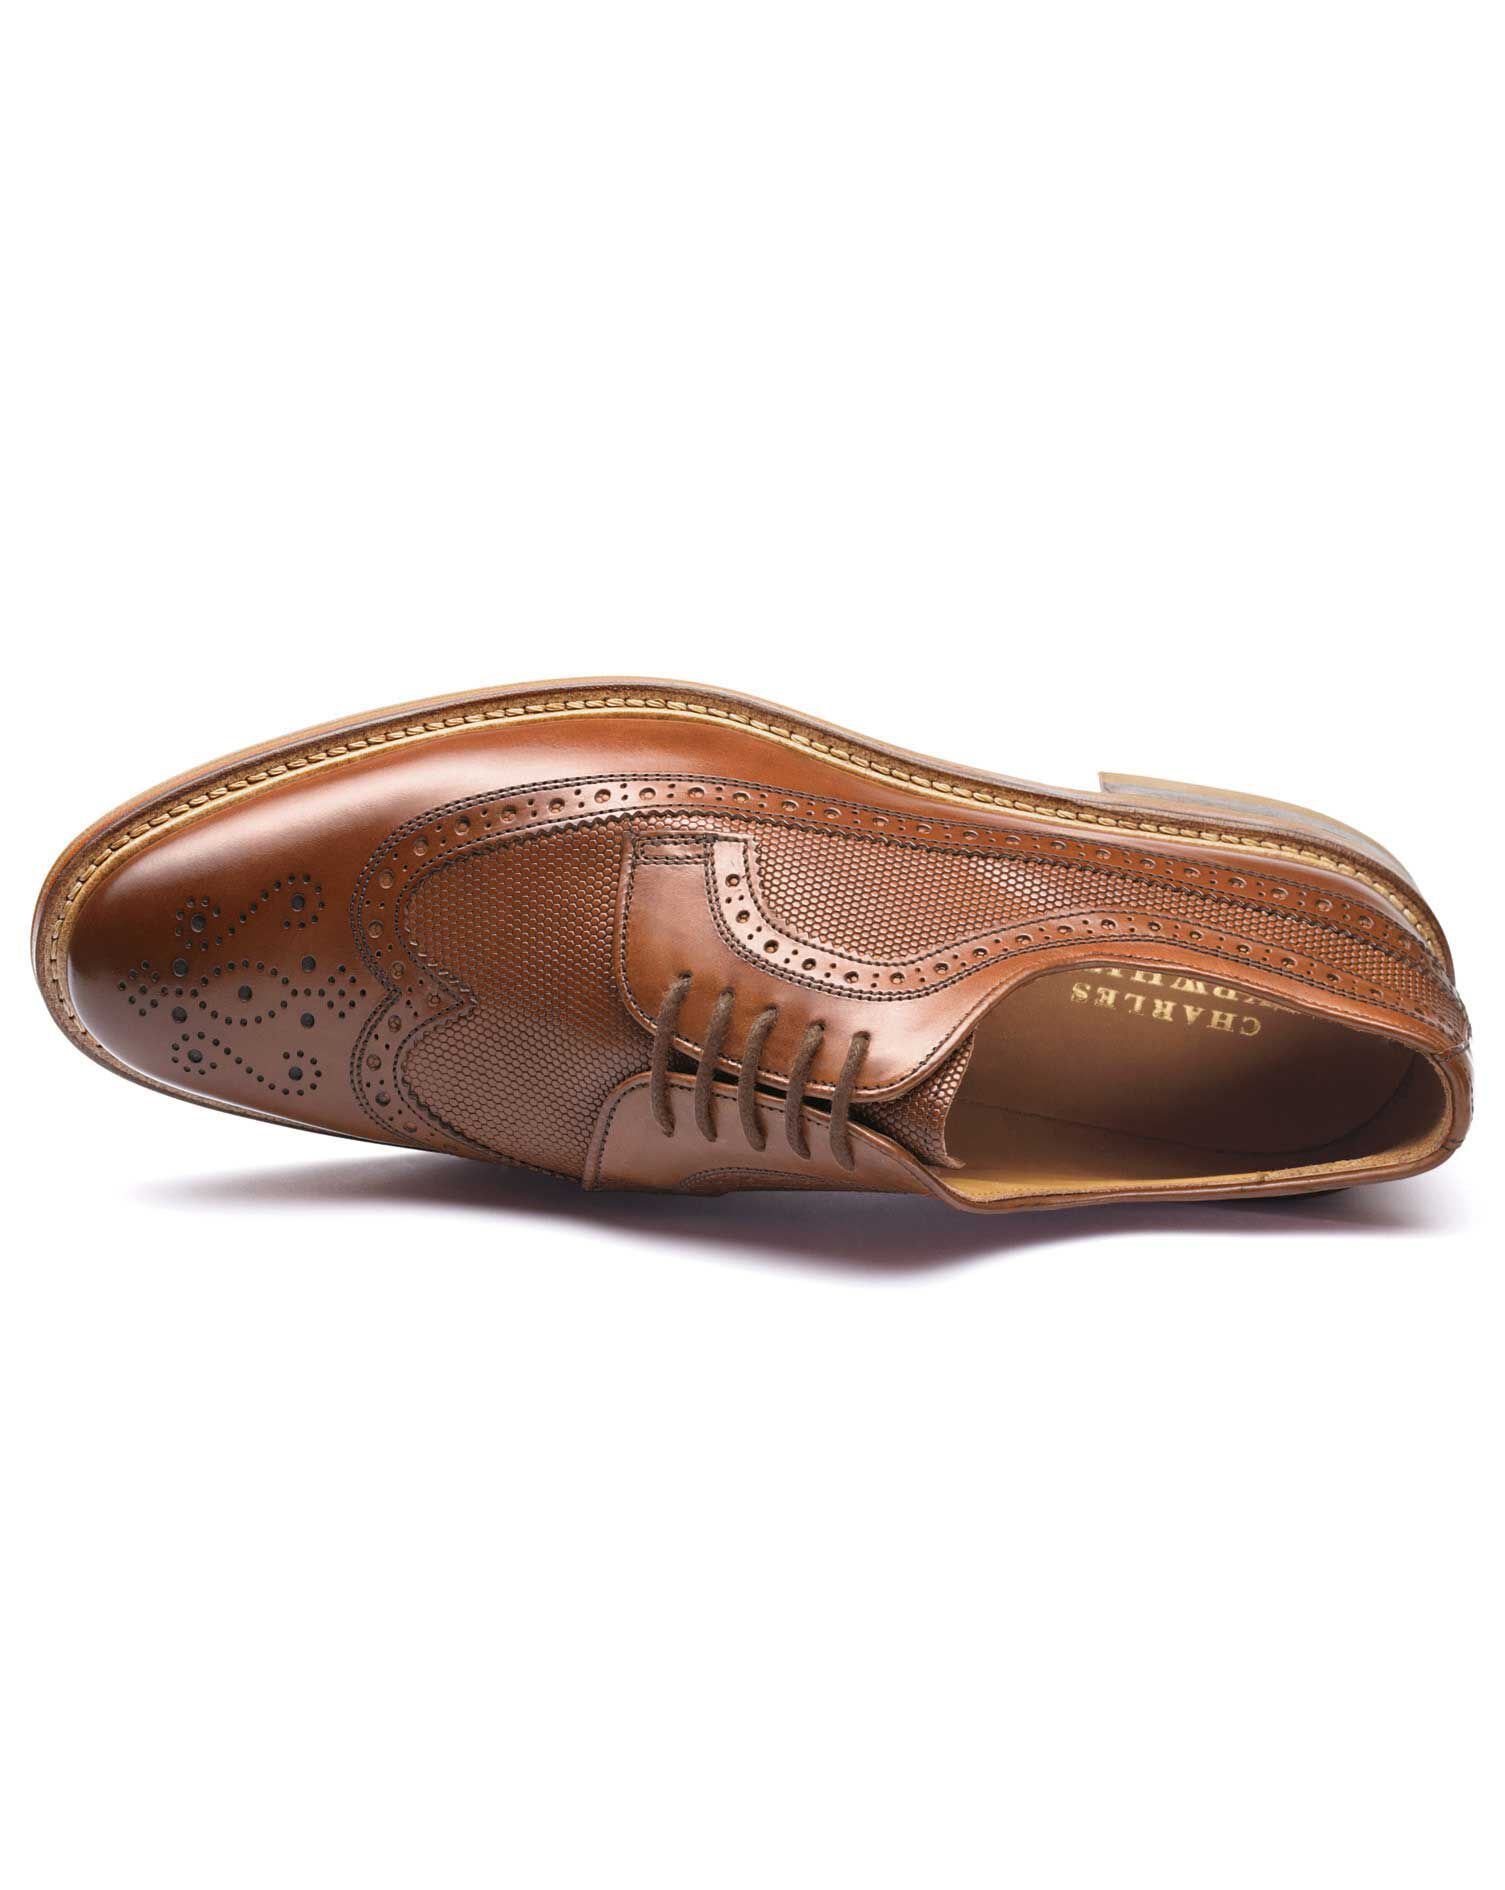 Tan Eastcott Wing Tip Brogue Derby Shoes Size 7.5 by Charles Tyrwhitt